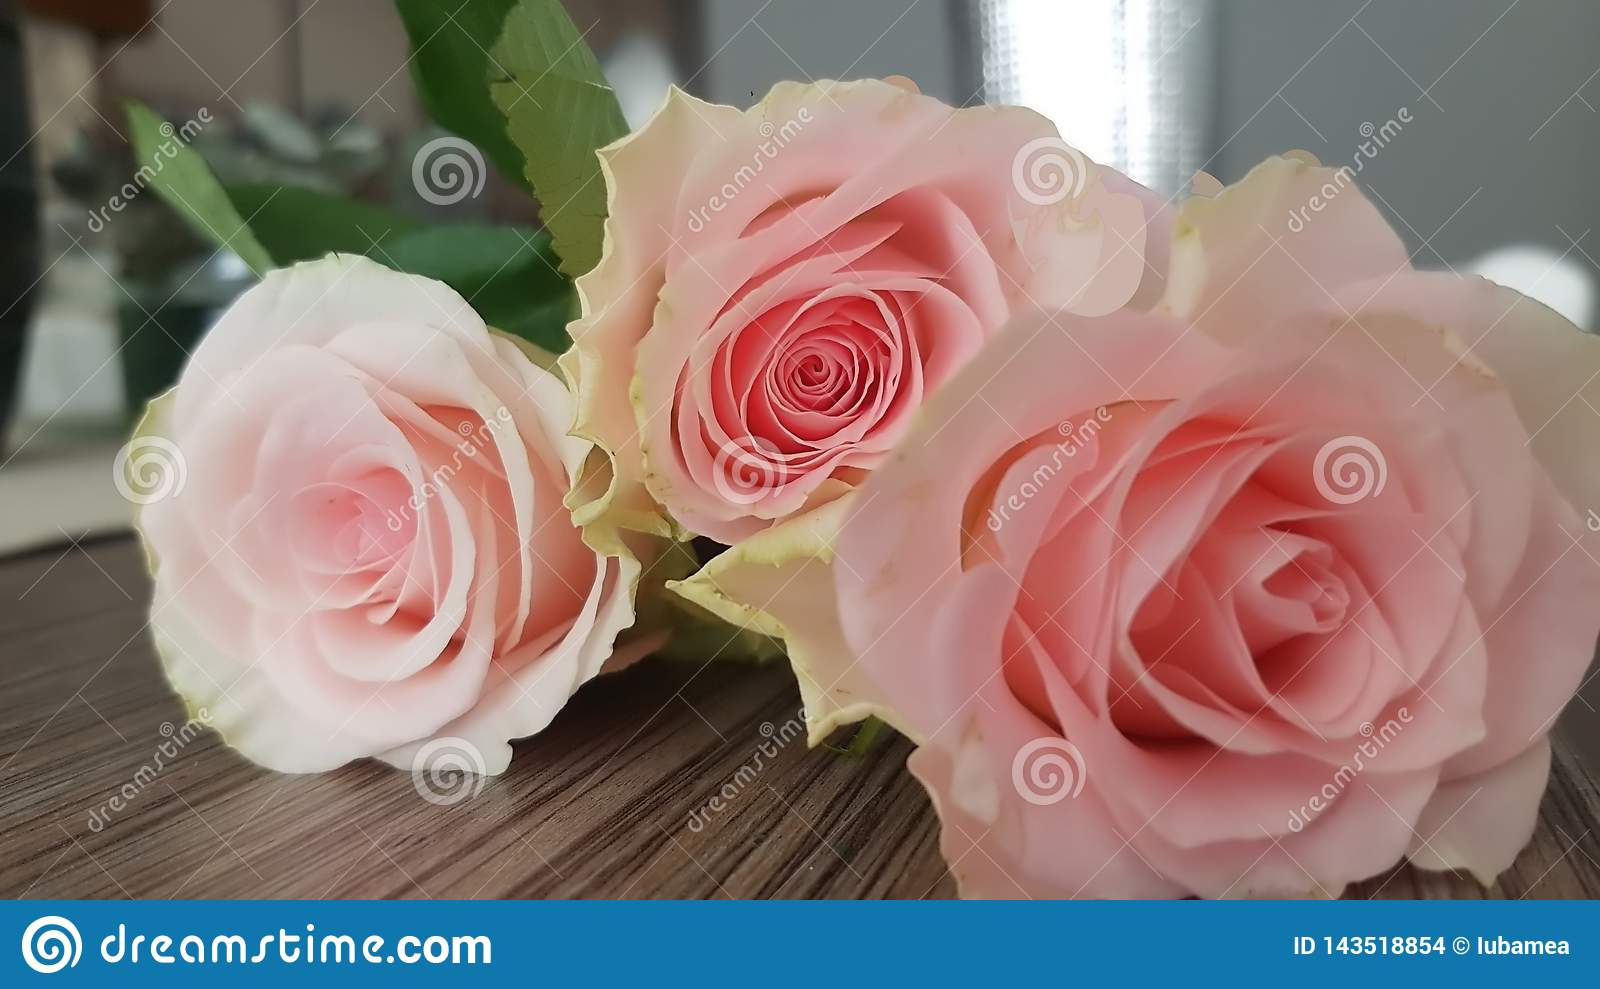 Beautiful roses of a delicate pink